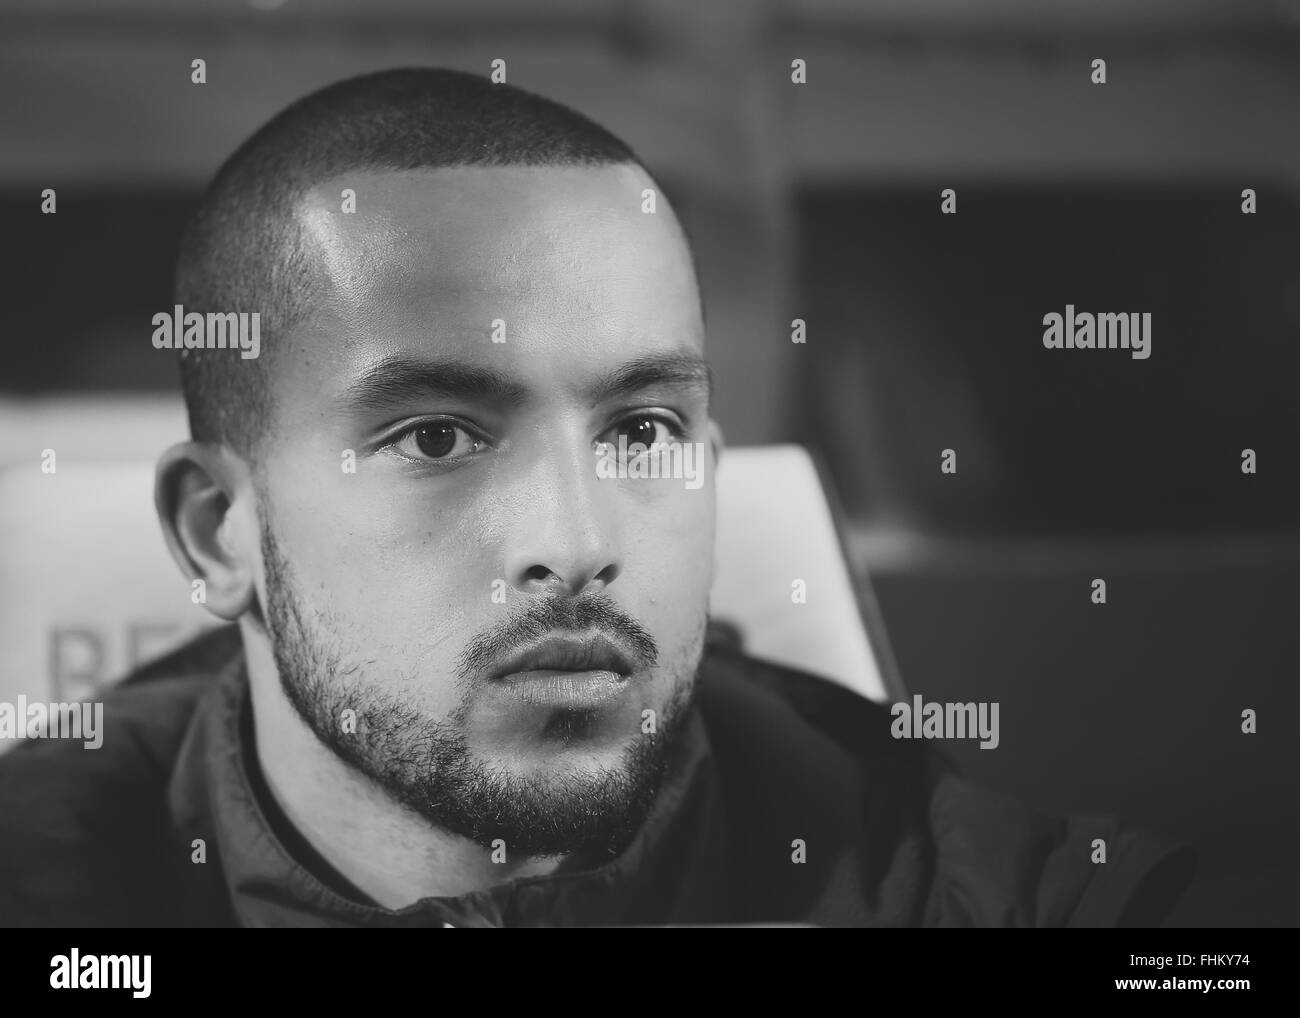 Arsenal's Theo Walcott, watches his side take on QPR at Loftus Road on March, 4, 2015. - Stock Image